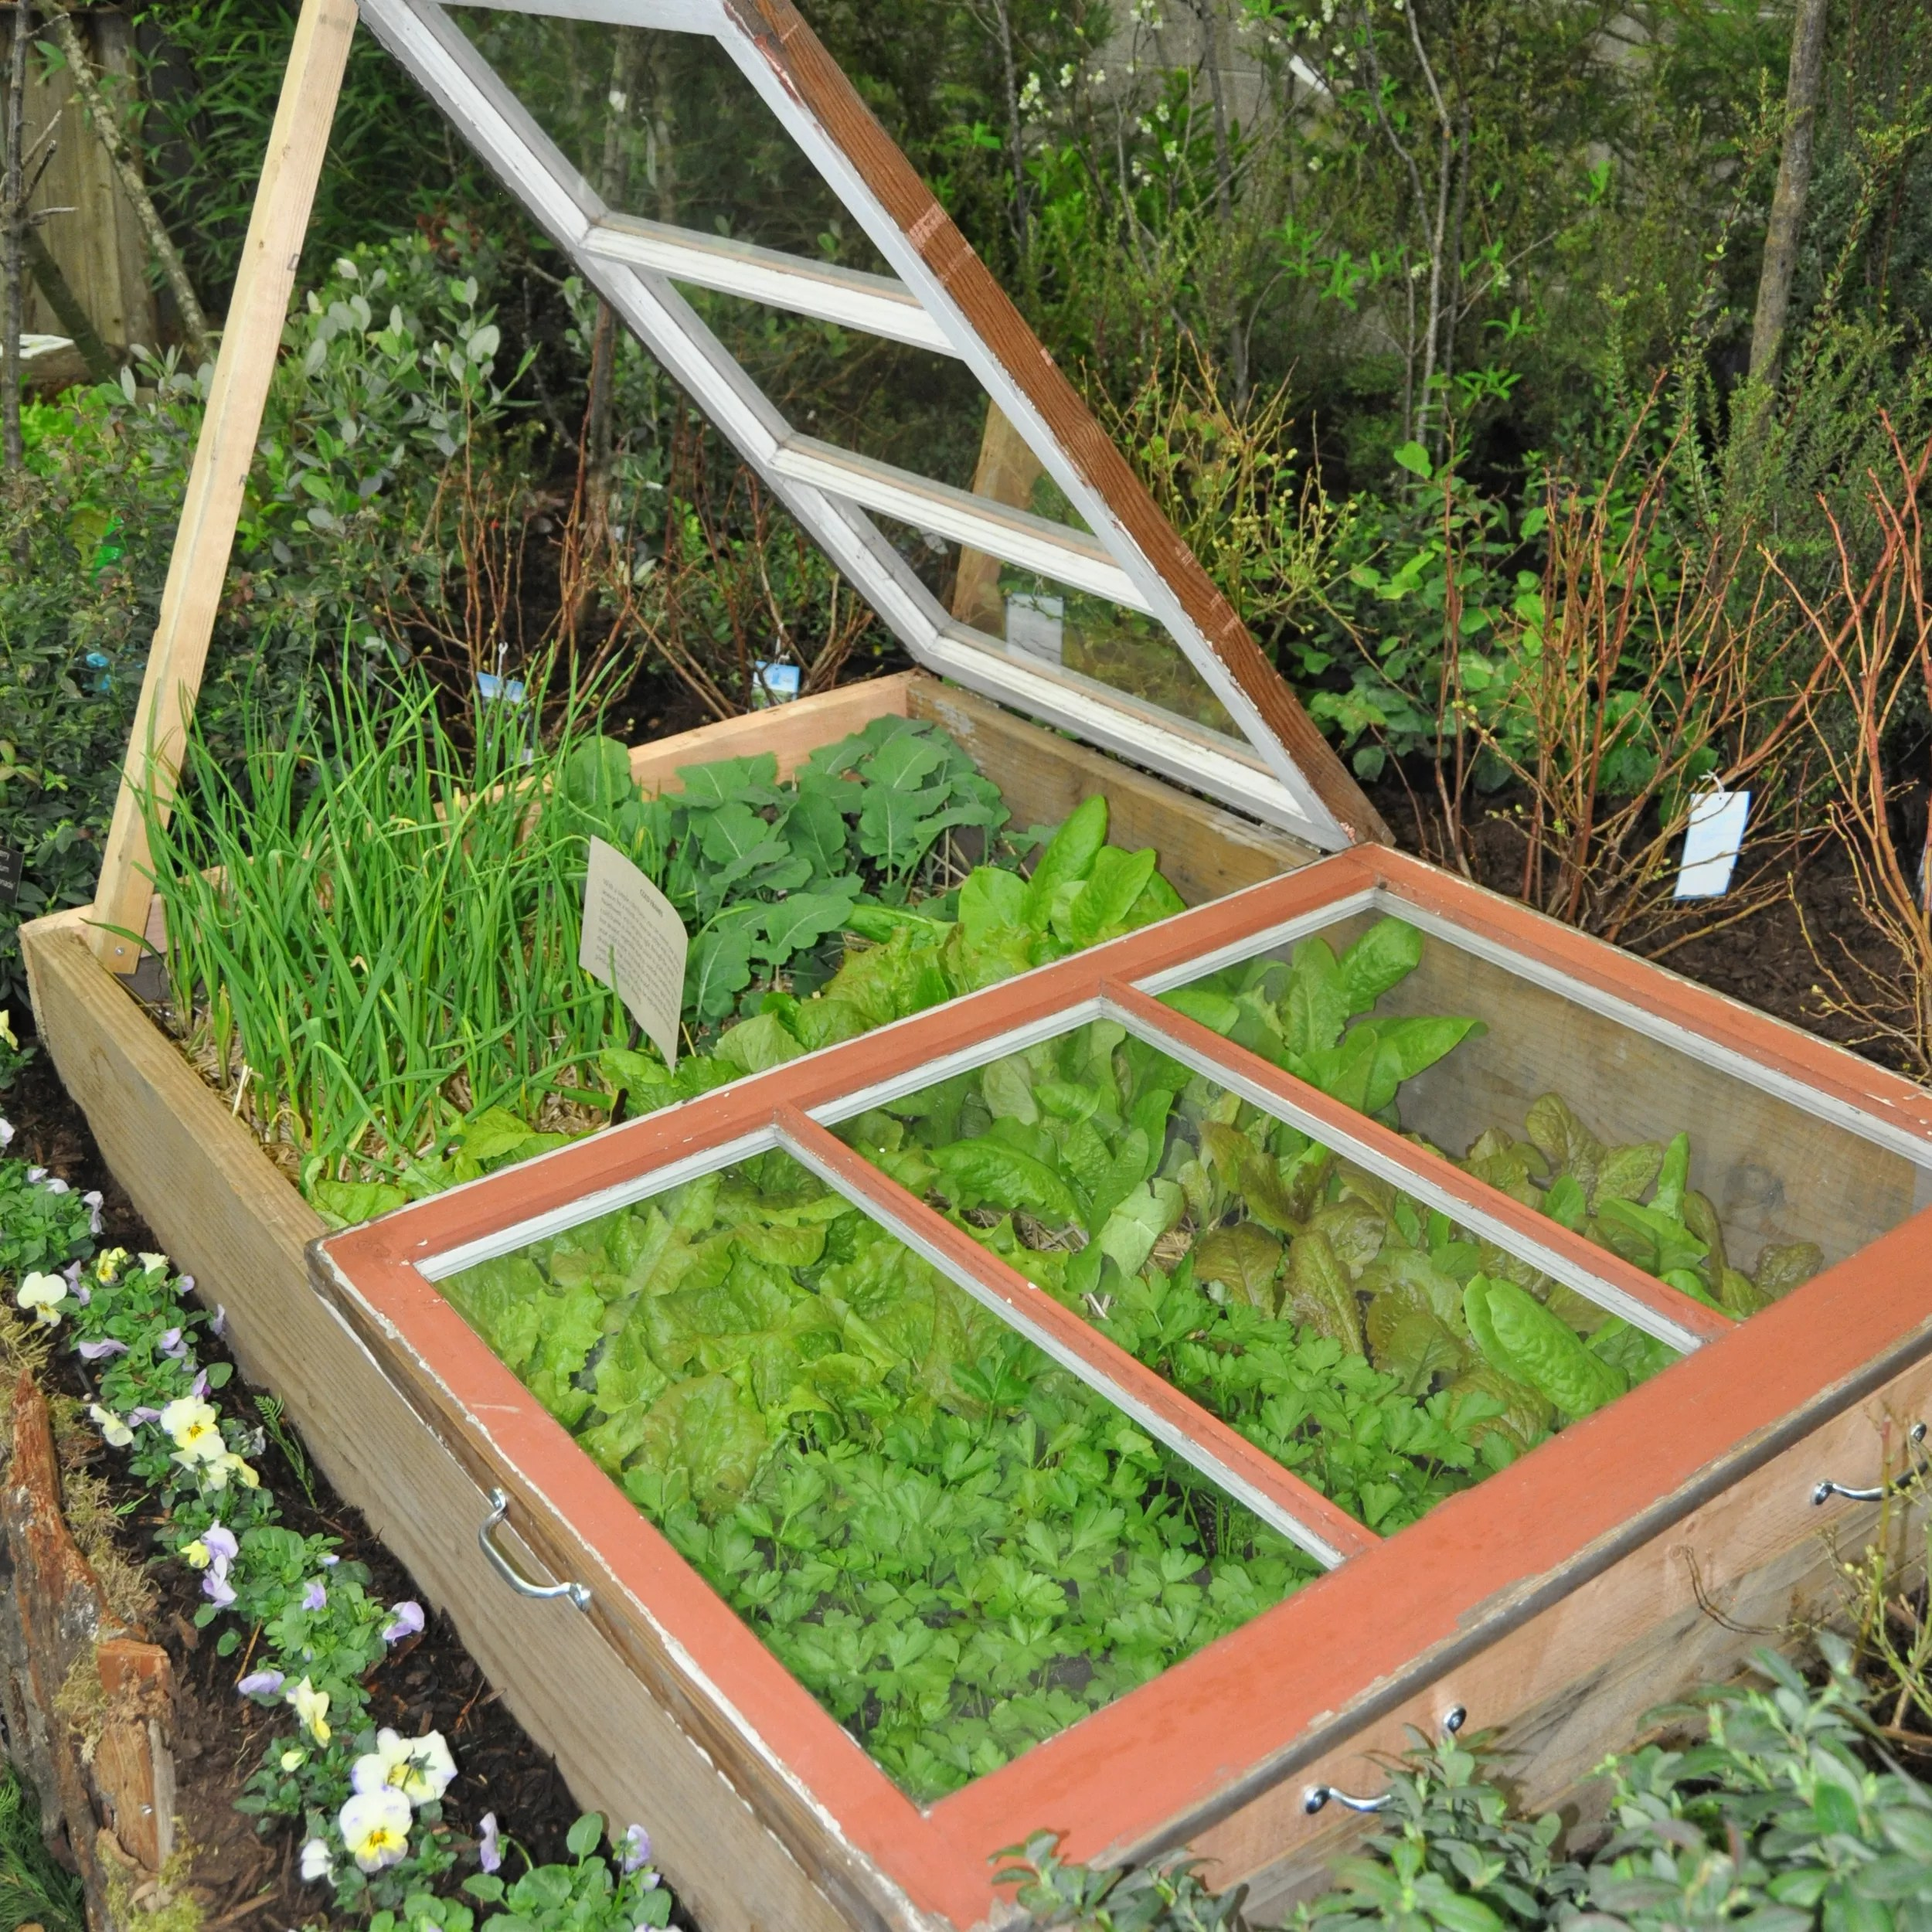 gardening cold frame helps plants